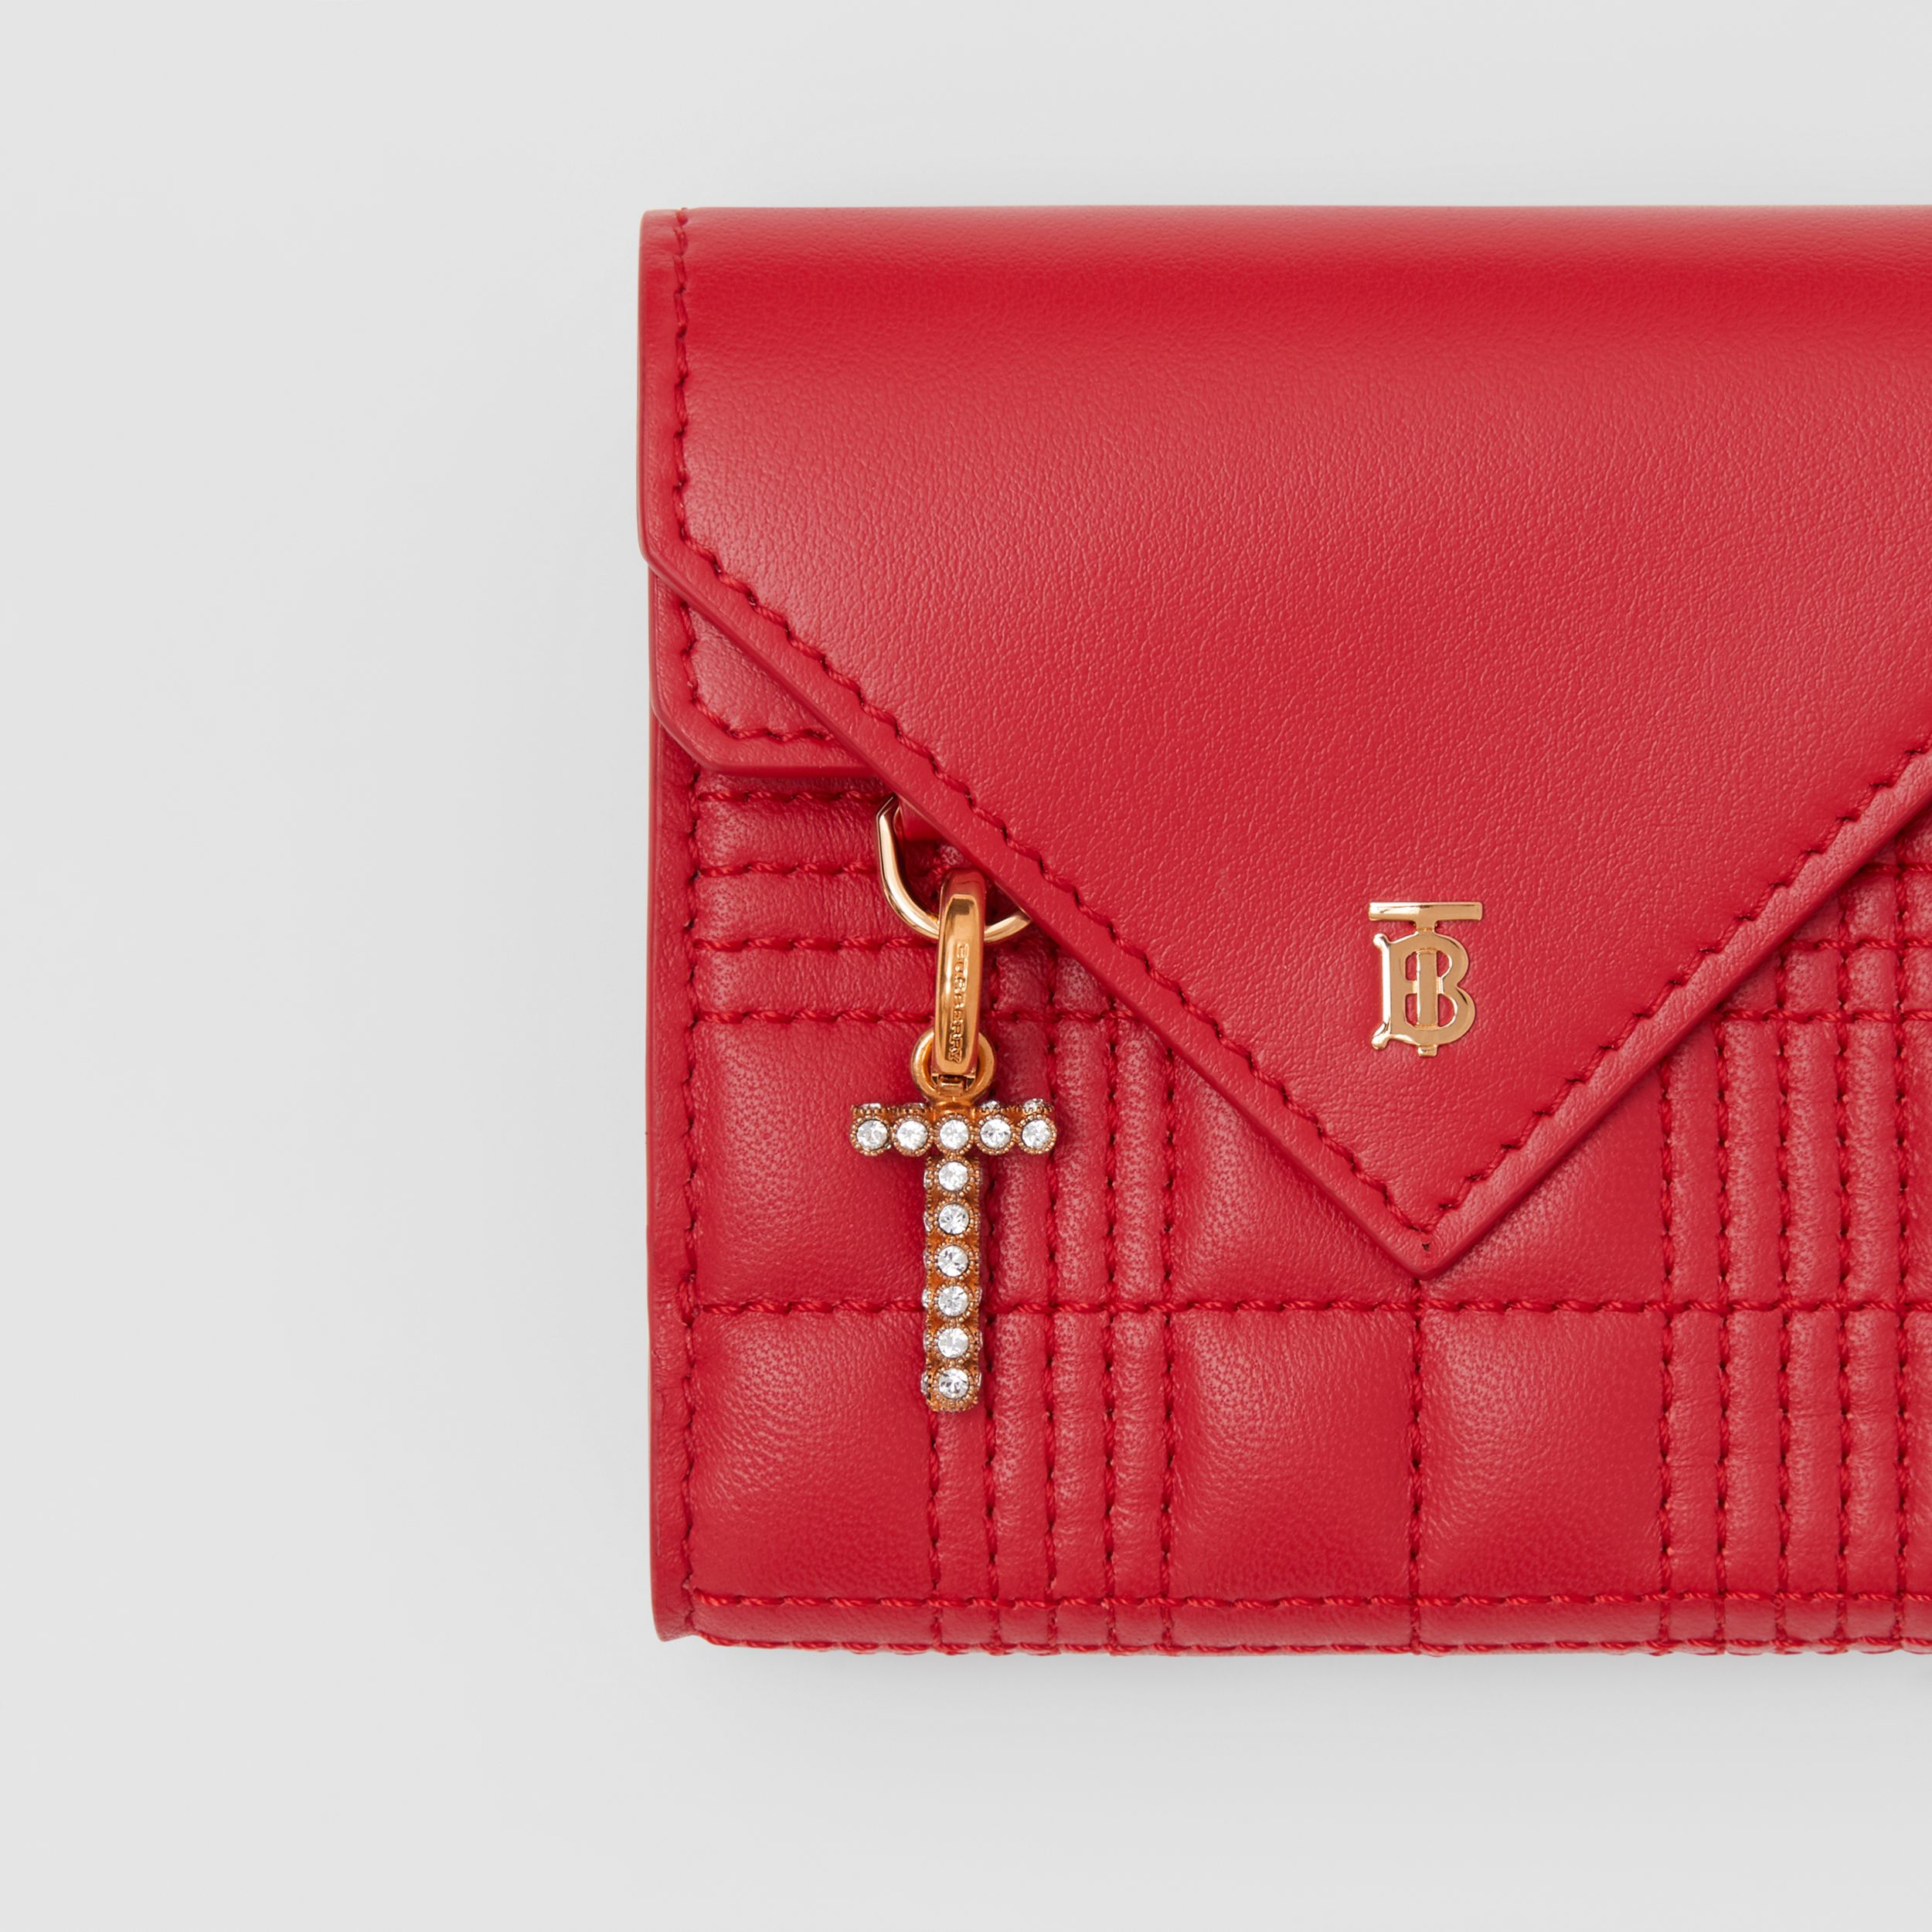 Quilted Lambskin Folding Wallet in Bright Red - Women | Burberry Hong Kong S.A.R. - 2